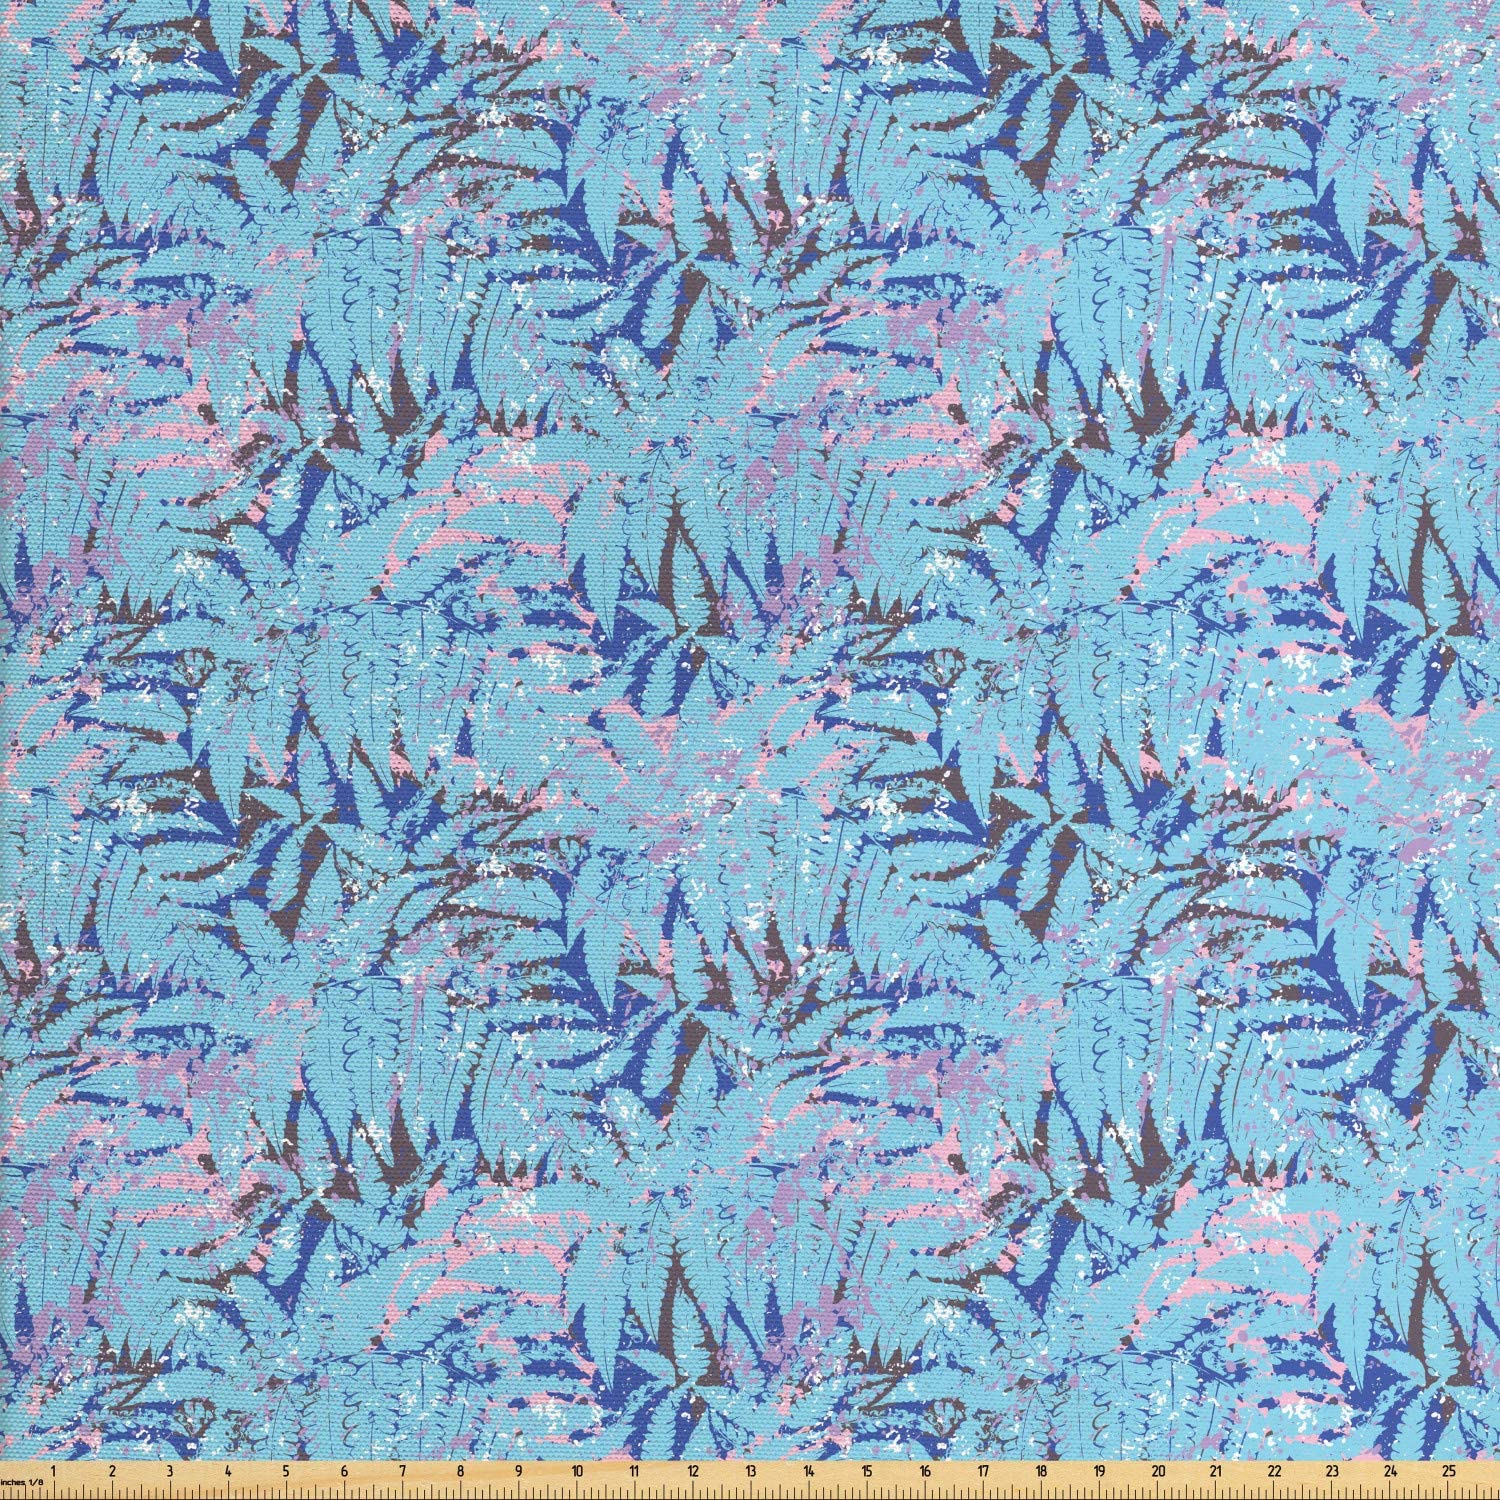 Ambesonne Natural Color Fabric by The Yard, Tropical Pattern with Exotic Leaves and Grunge Paint Splashes, Decorative Fabric for Upholstery and Home Accents, 1 Yard, Pale Sky Blue Multicolor